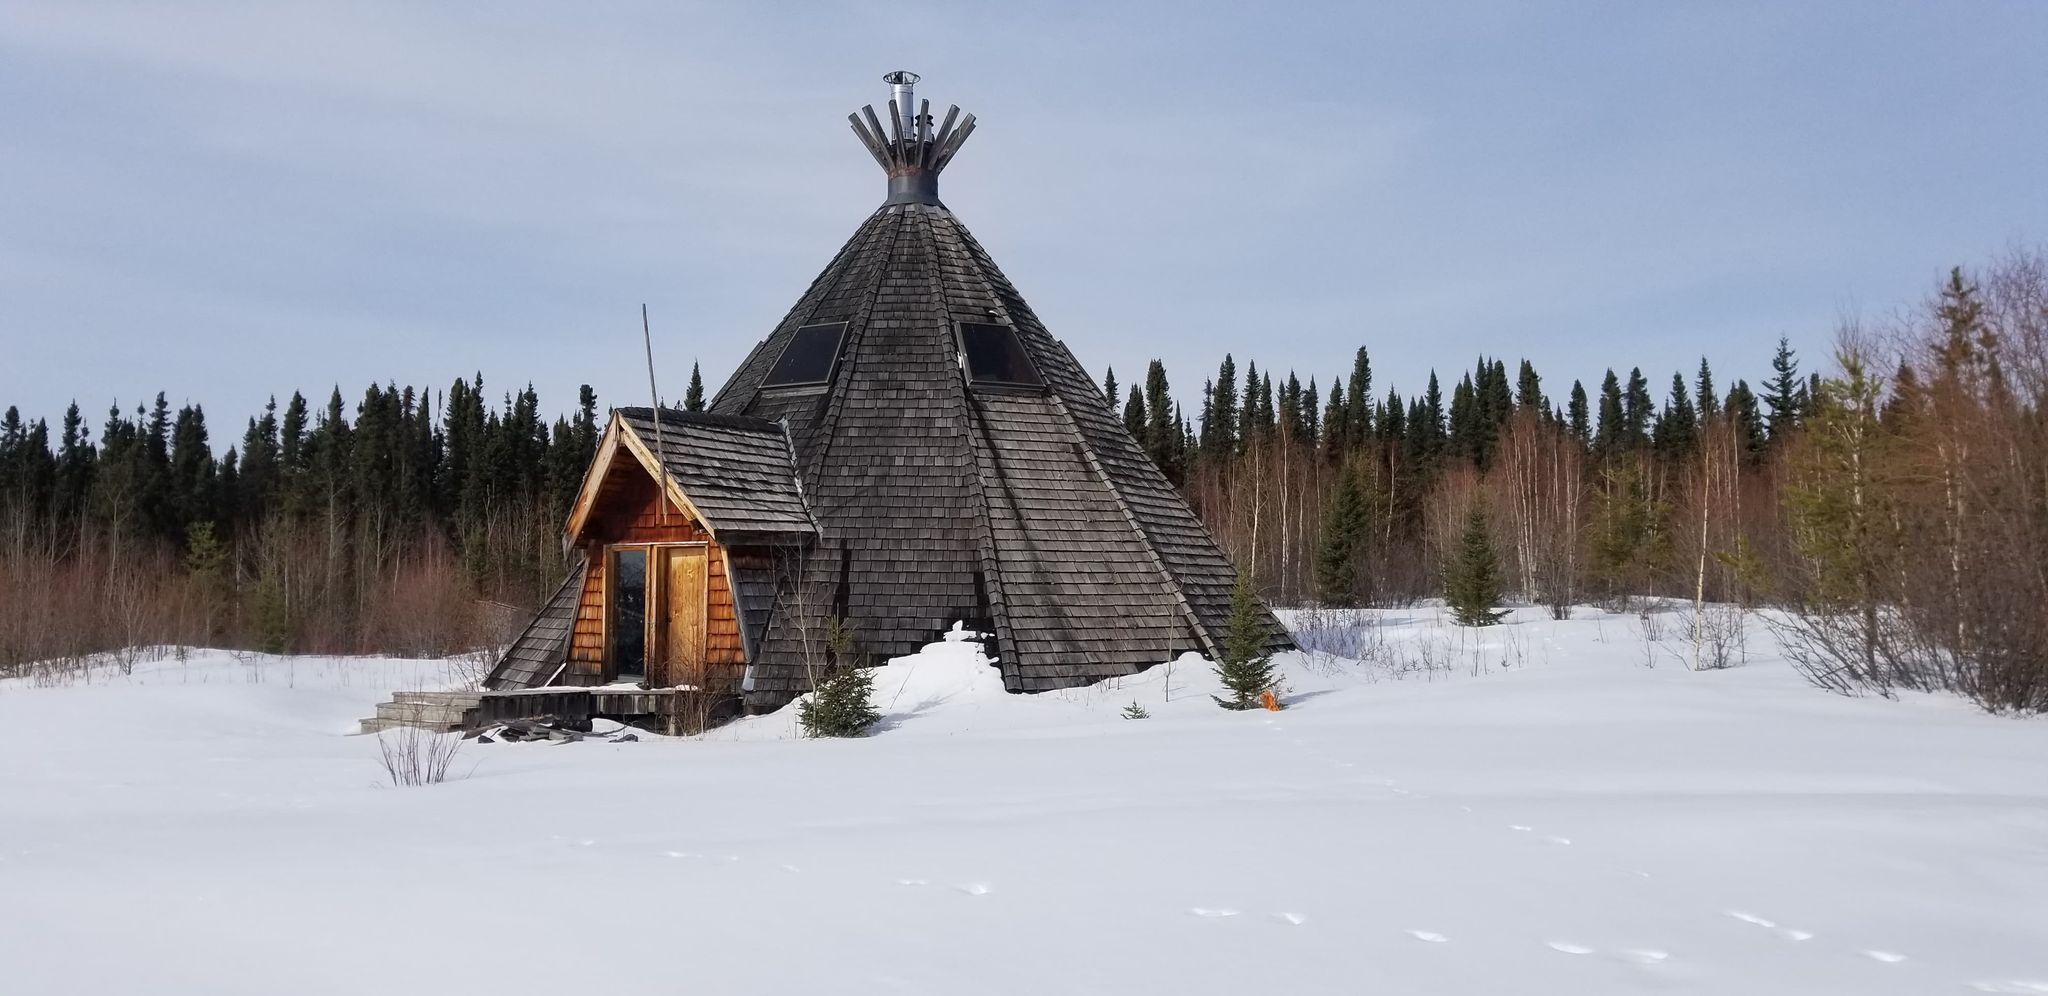 Leftrook Lake teepee for special learning and teaching of traditional Cree Culture